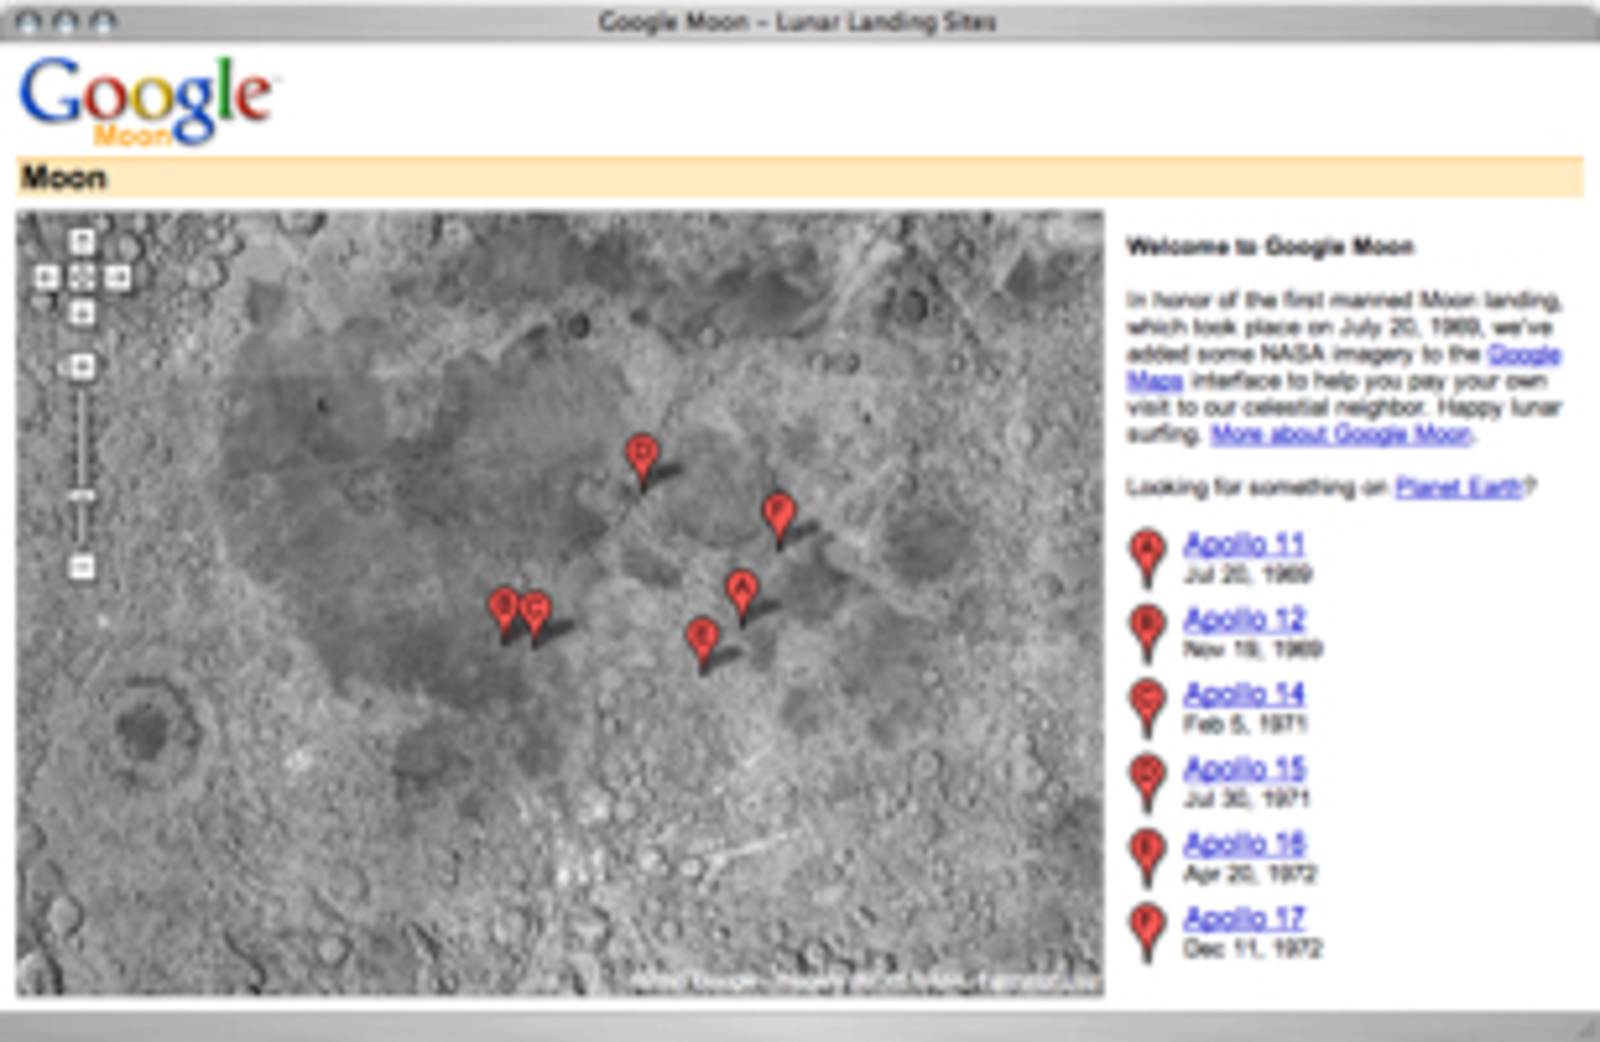 How To Advertise On Craigslist >> Google Moon - Cool Hunting